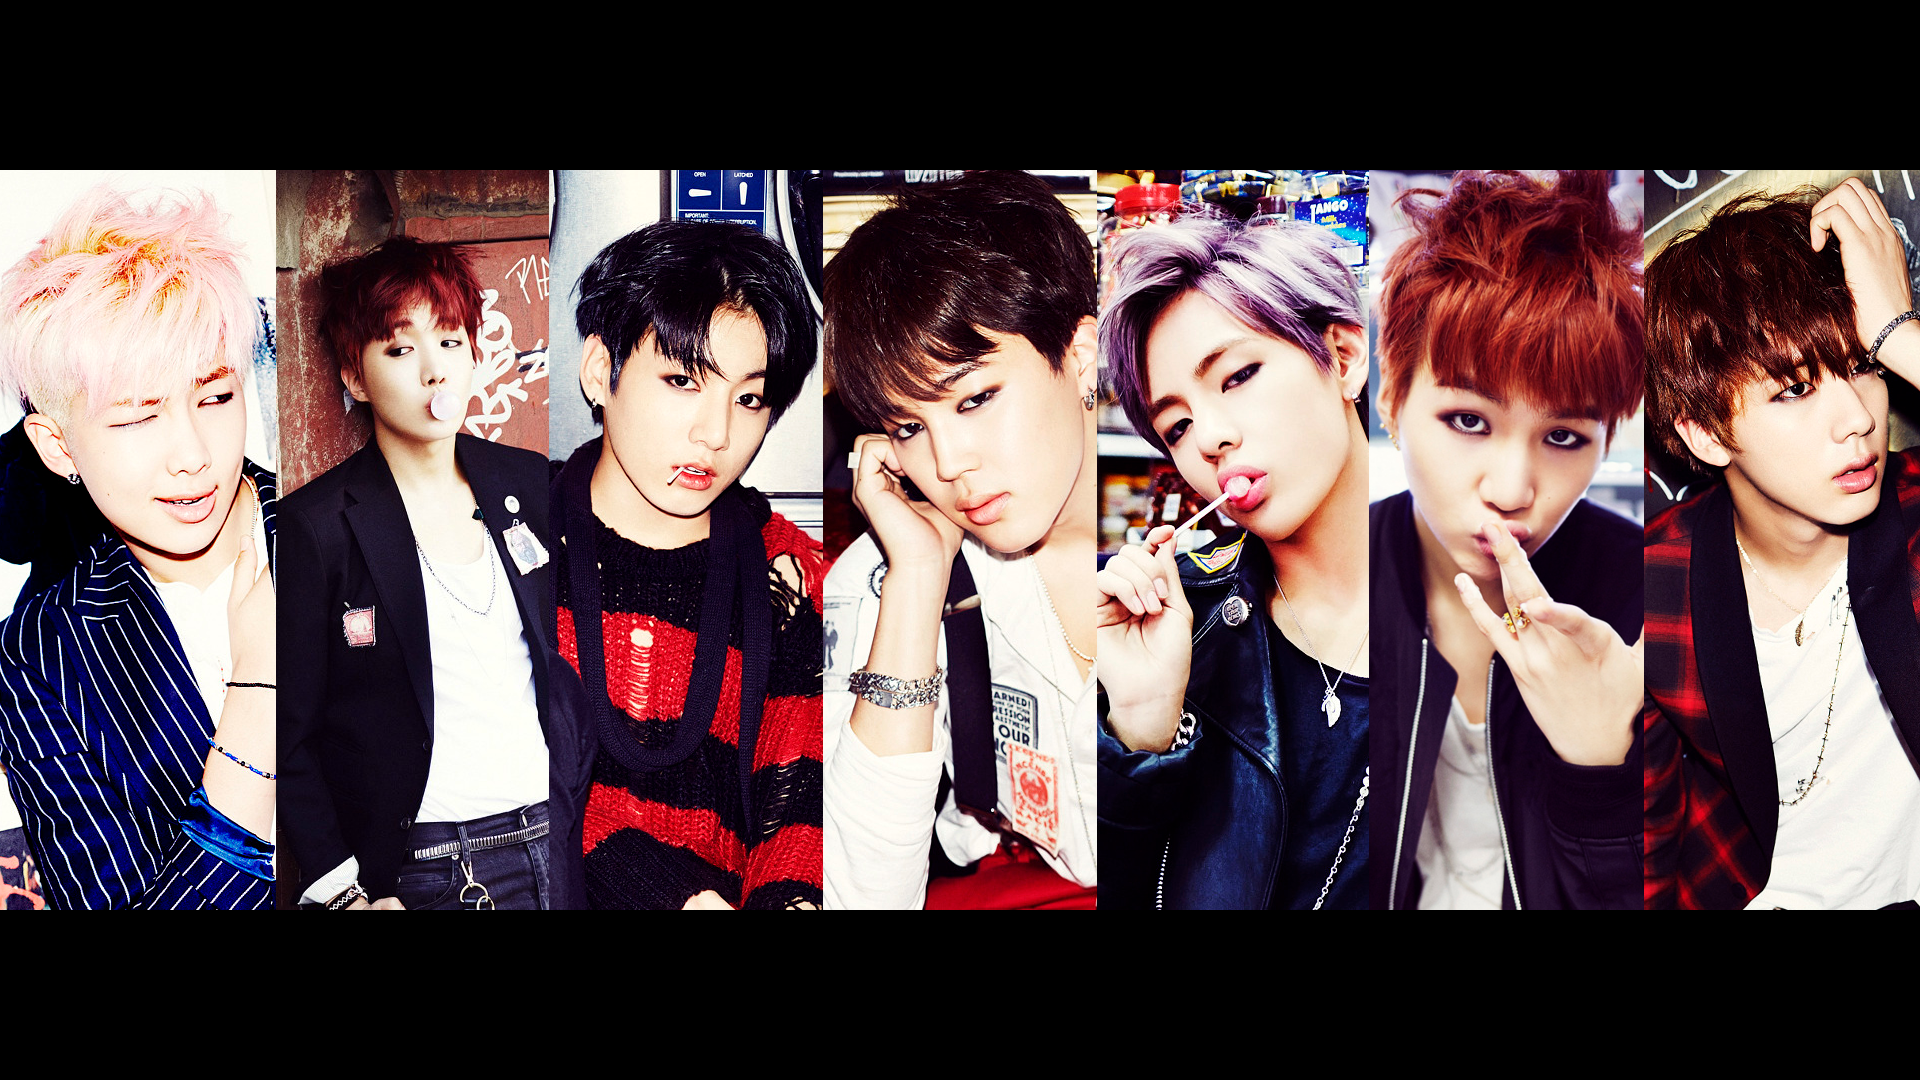 BTS images thumb 1920 713733 HD wallpaper and background photos 1920x1080